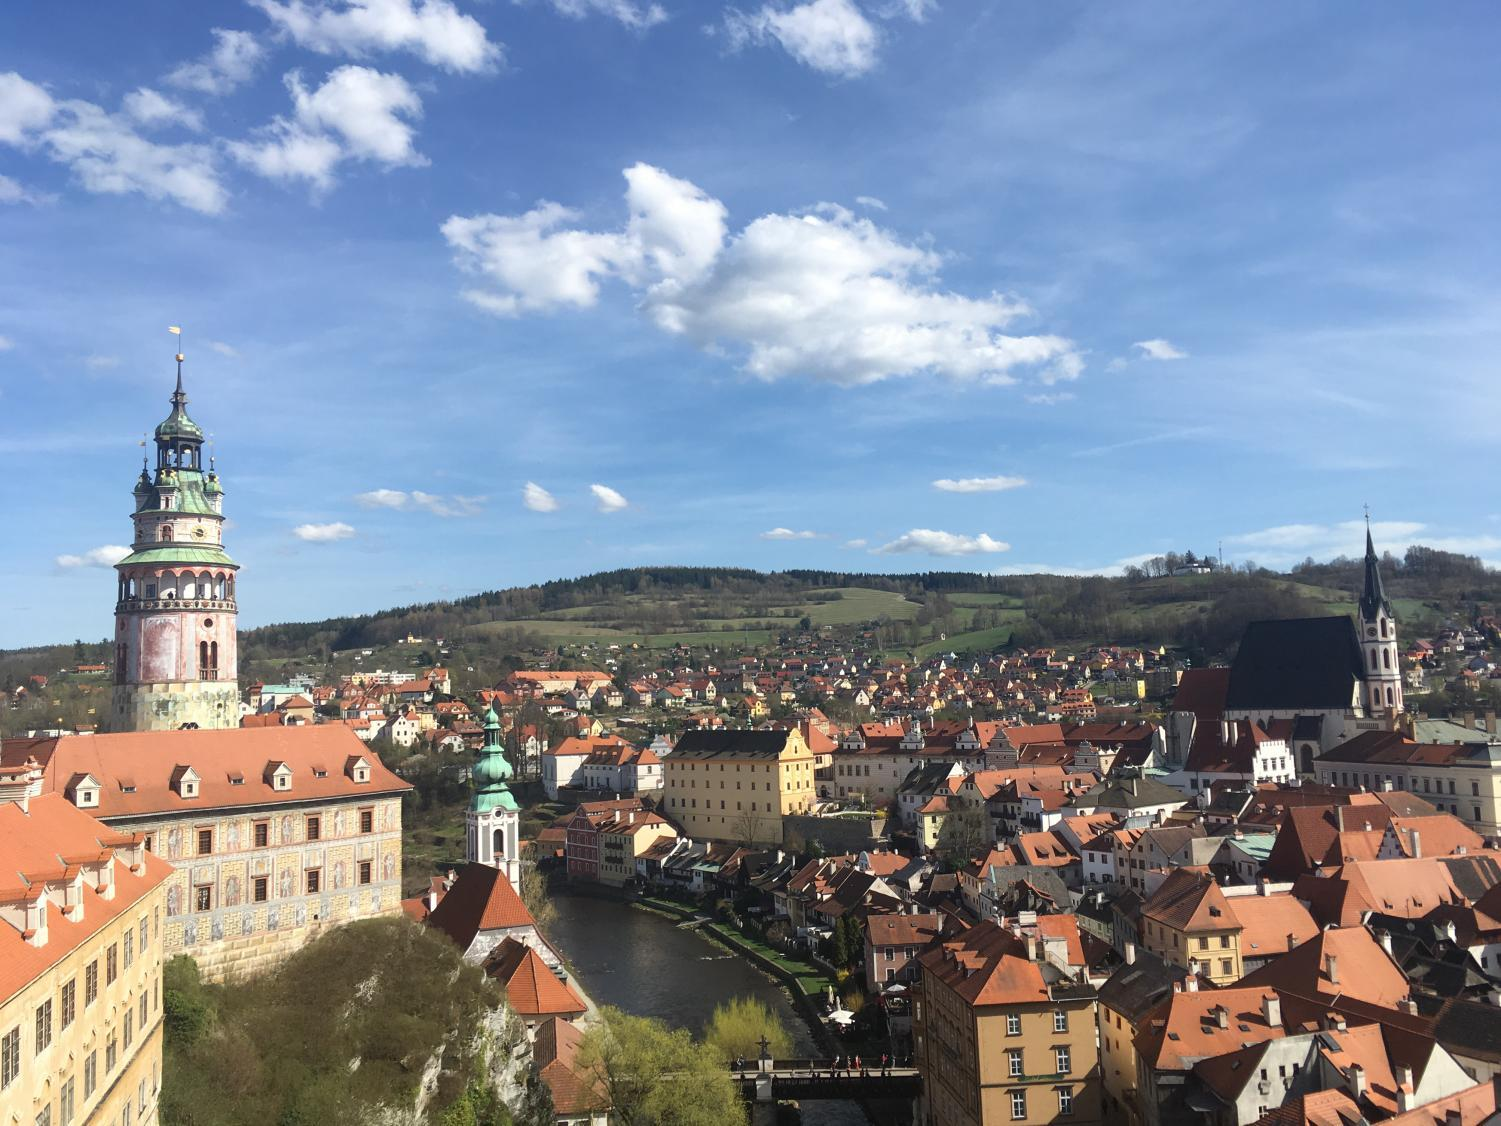 Old Town as seen from a lookout point in Český Krumlov.